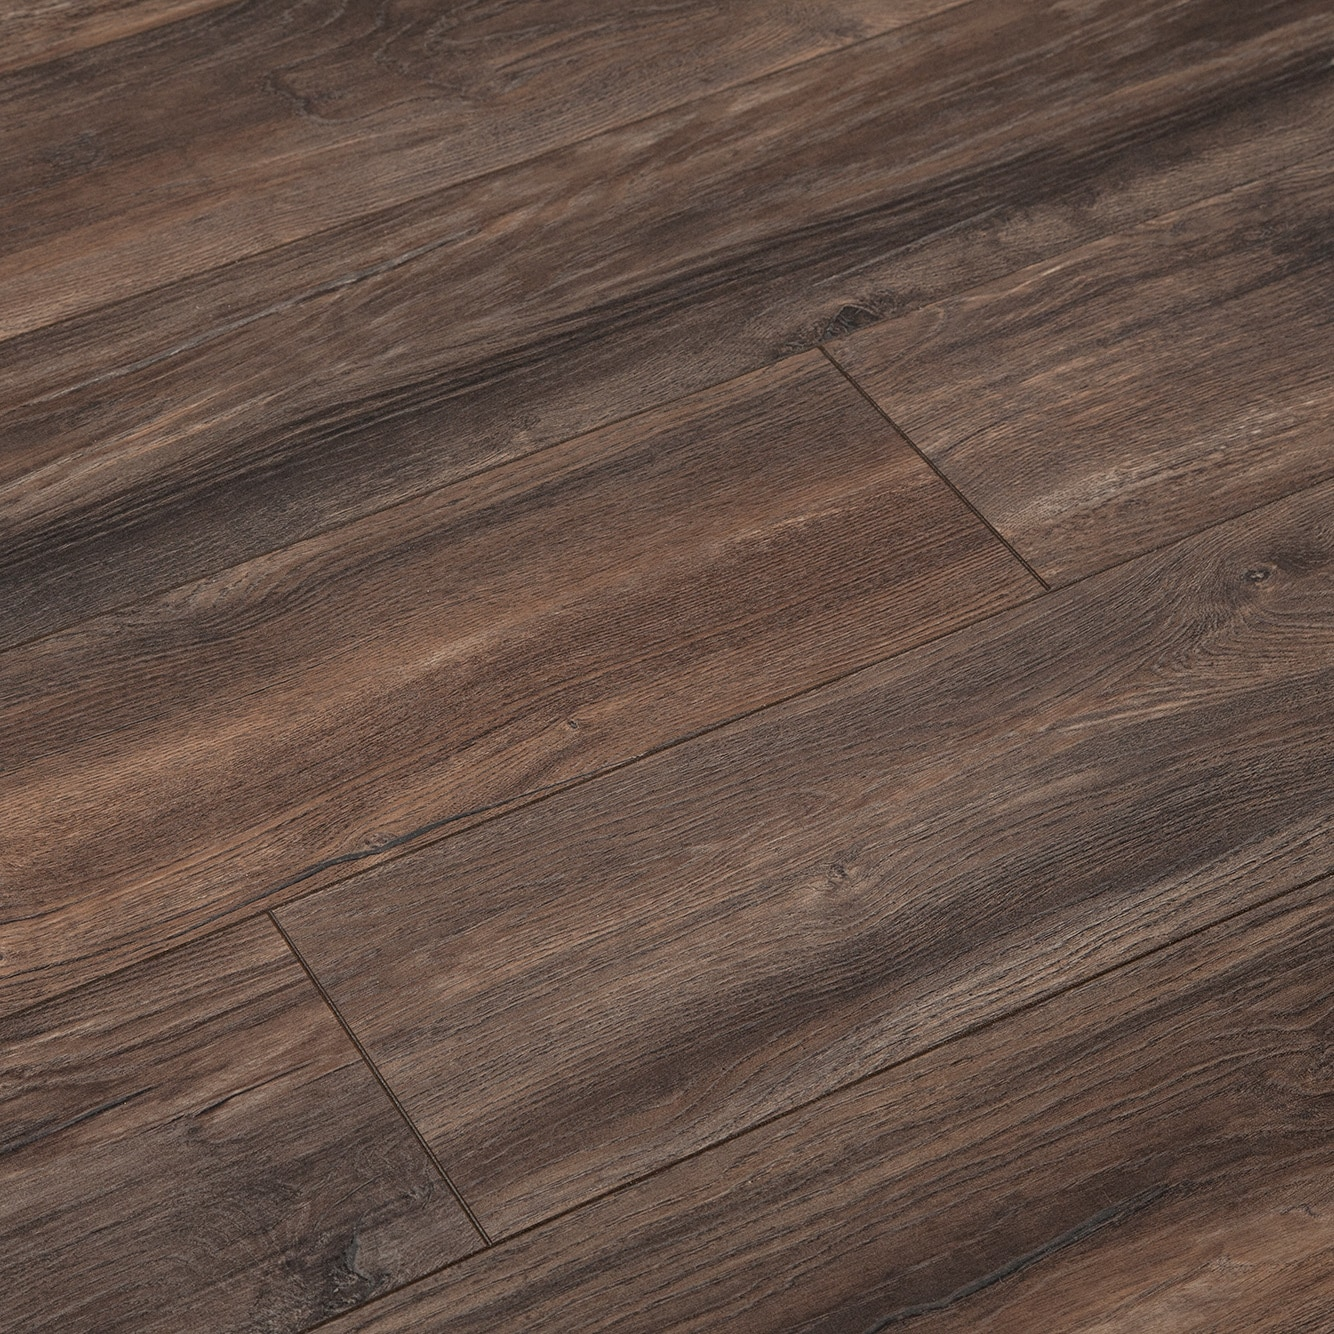 Harbour Dusk Oak / 12 / AC4 Laminate - 12mm AC4 - American Ingenuity Collection 0